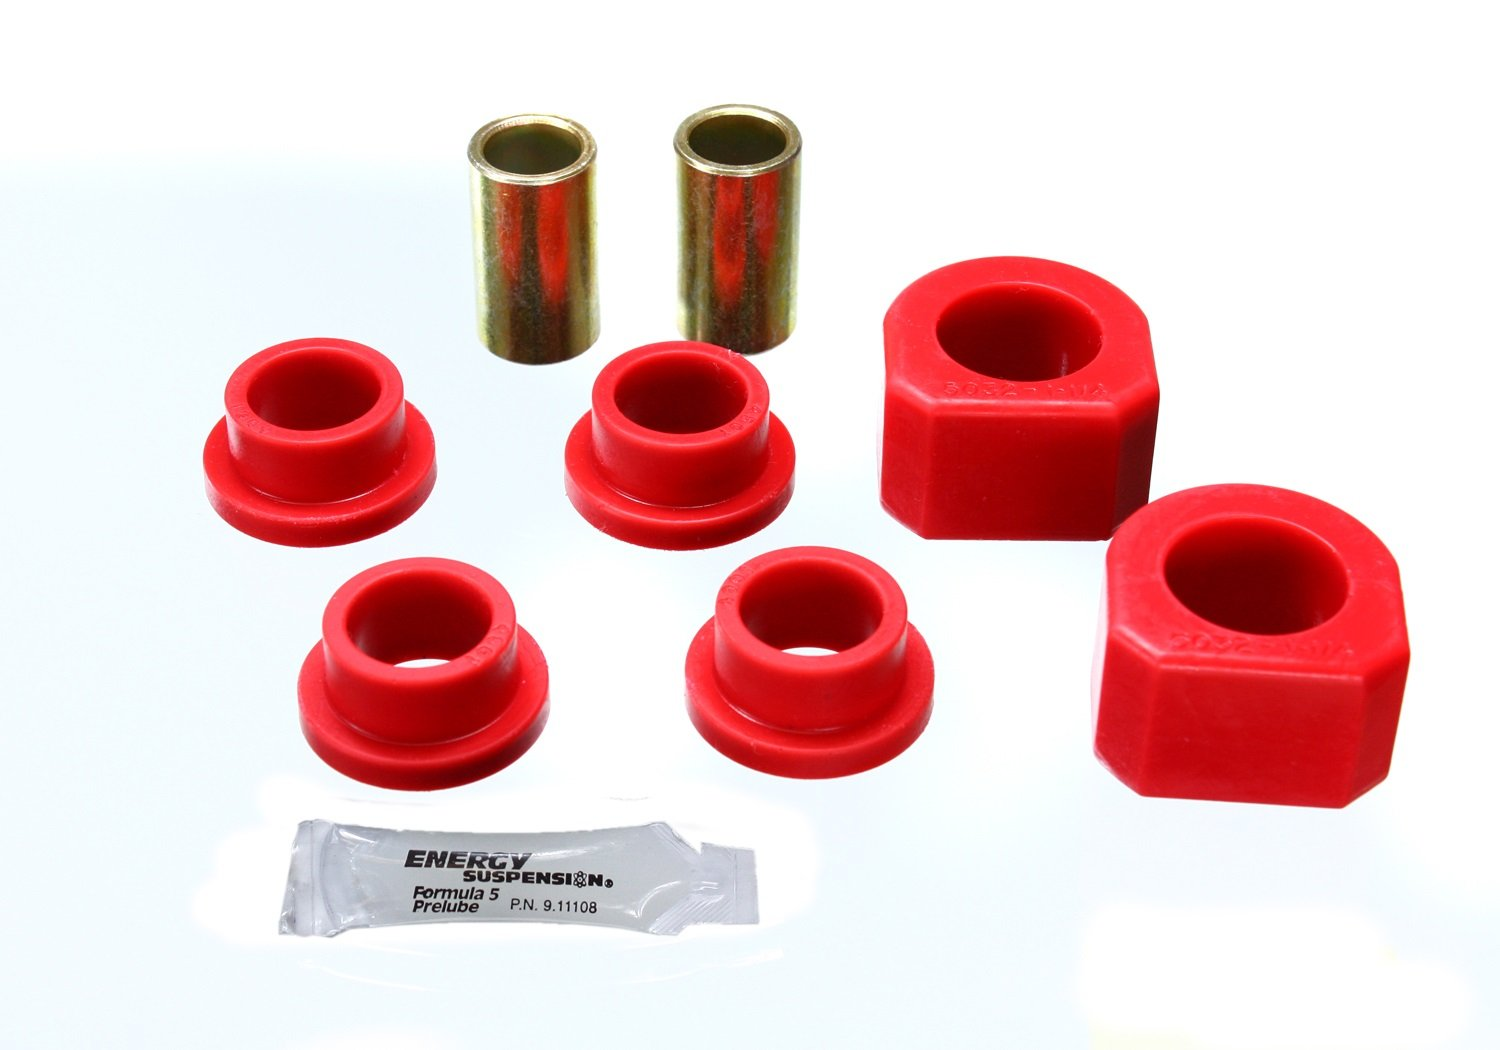 Energy Suspension 3.5118R GM 1-1/4'' 4 X FRT SWAY BAR Bushing by Energy Suspension